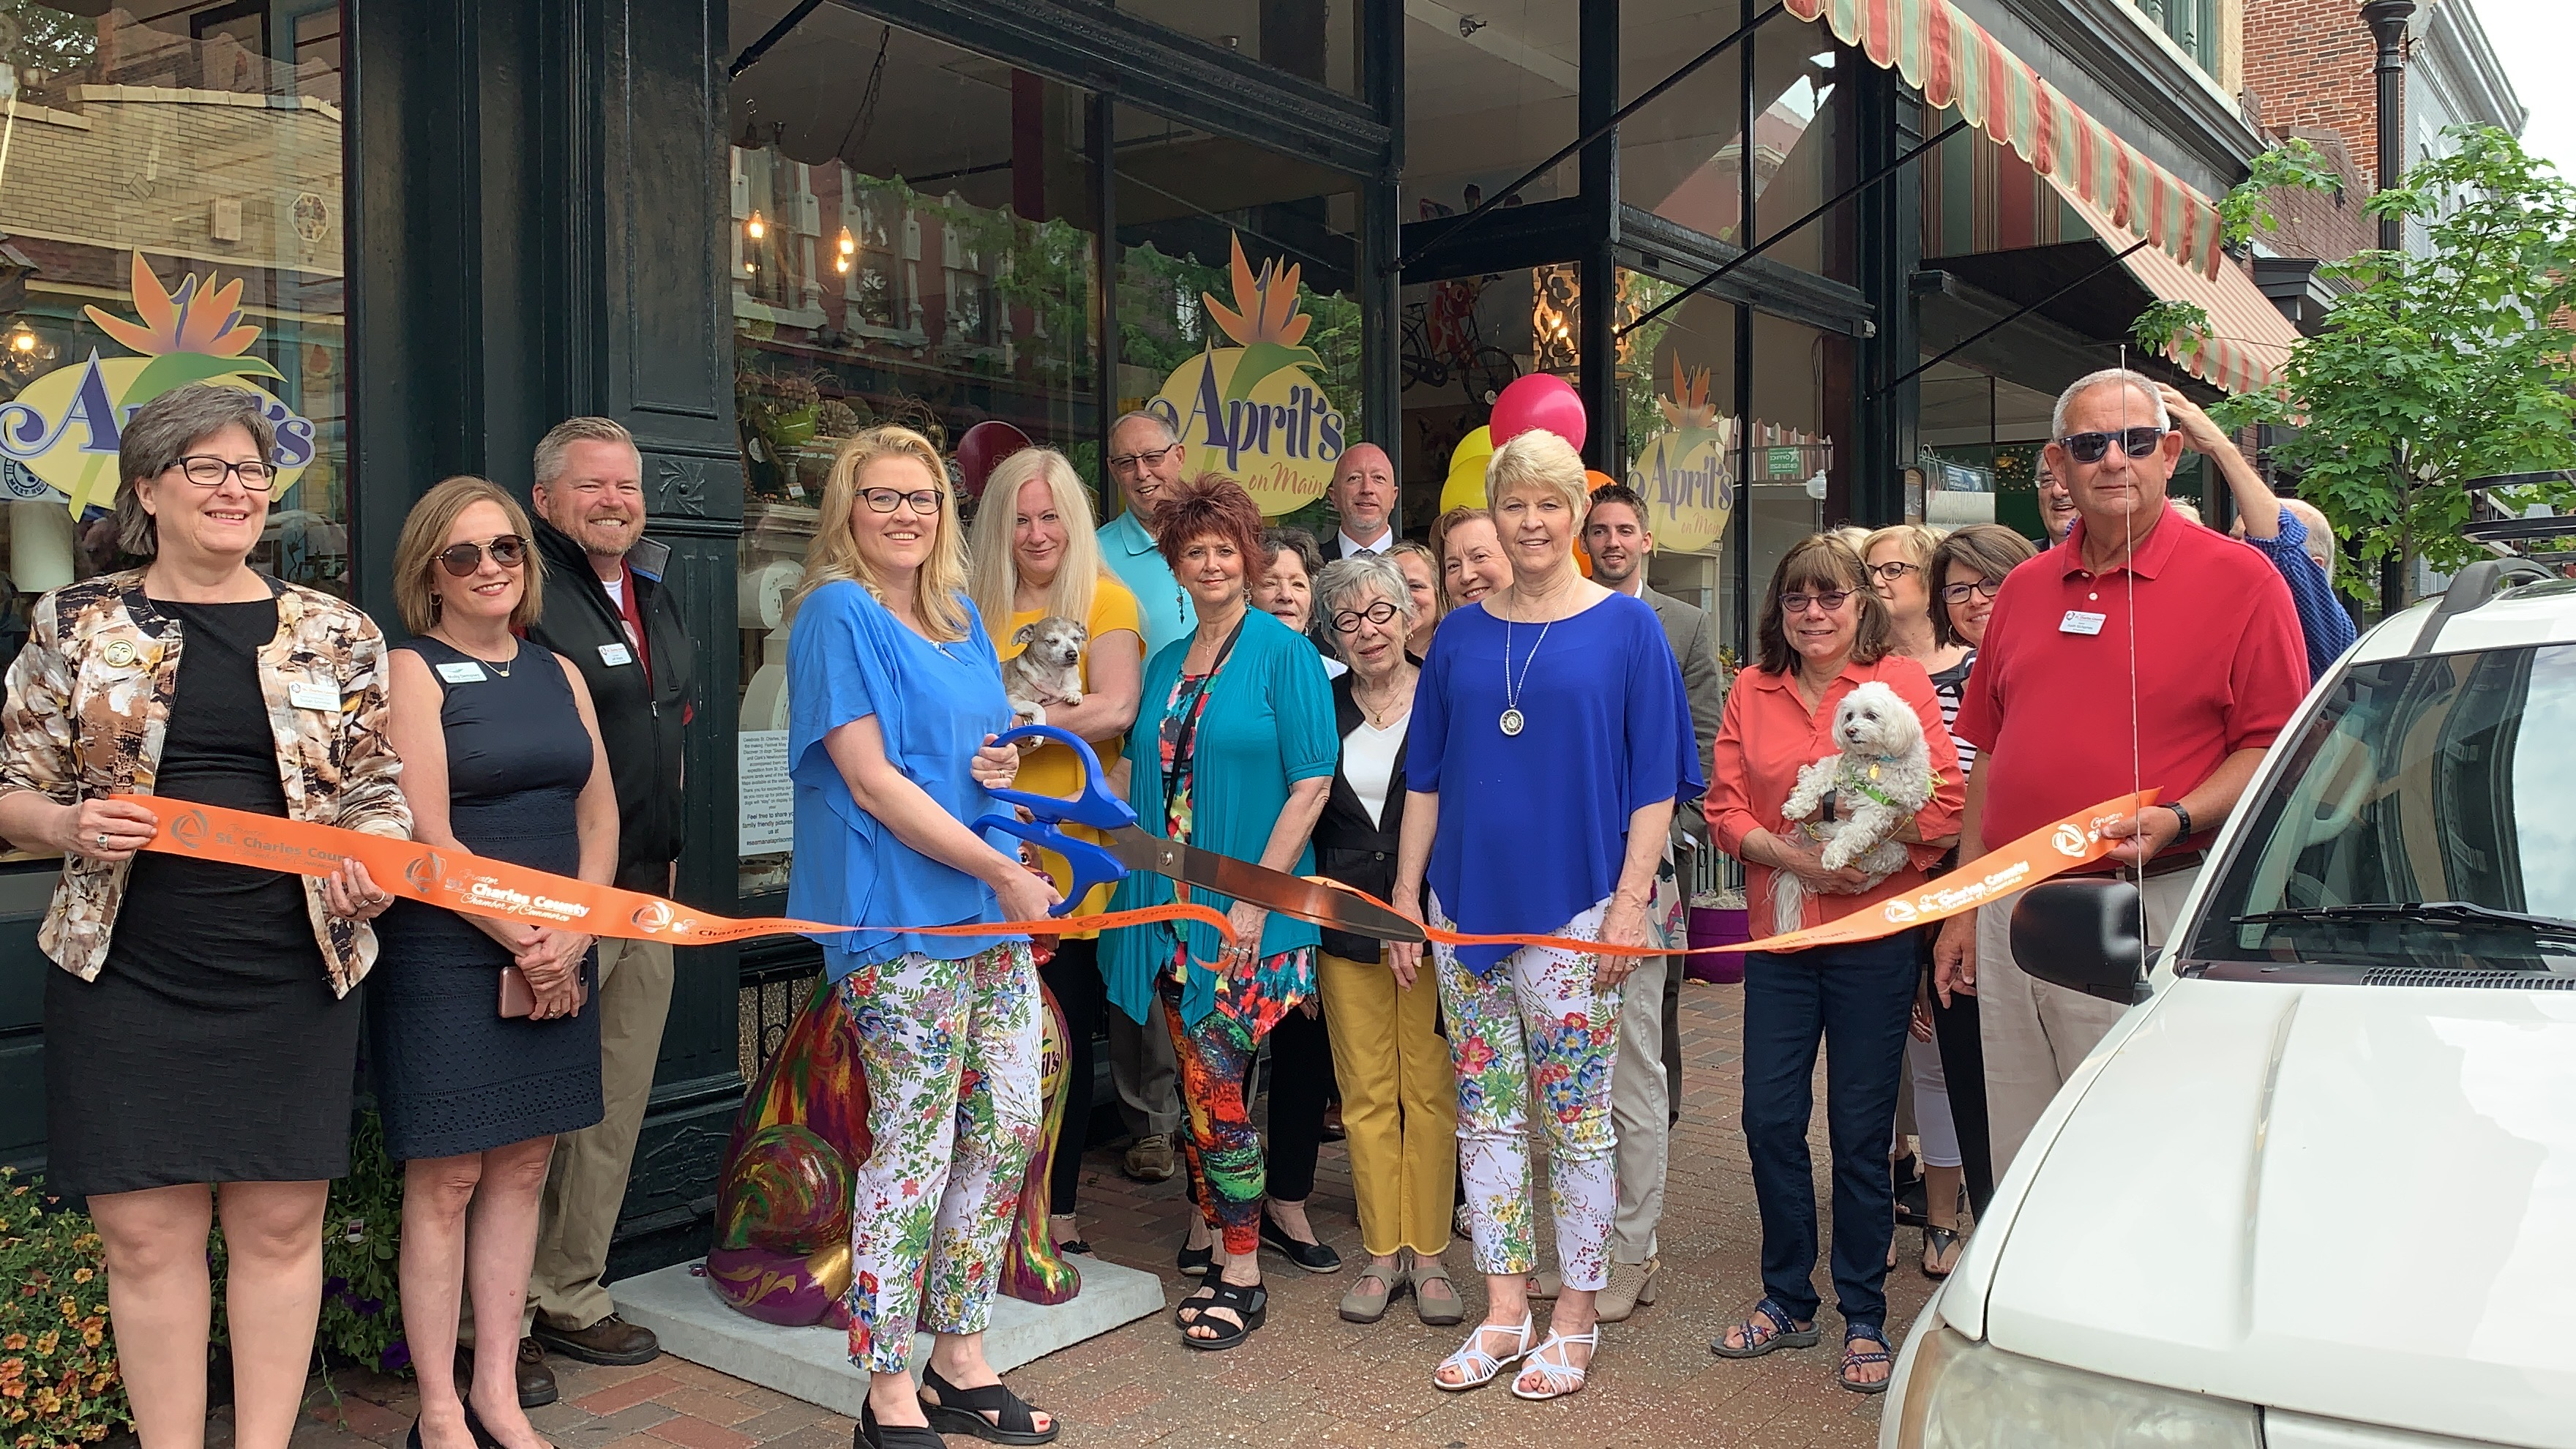 Image for April's on Main Celebrates  Finalist Nomination with Ribbon Cutting